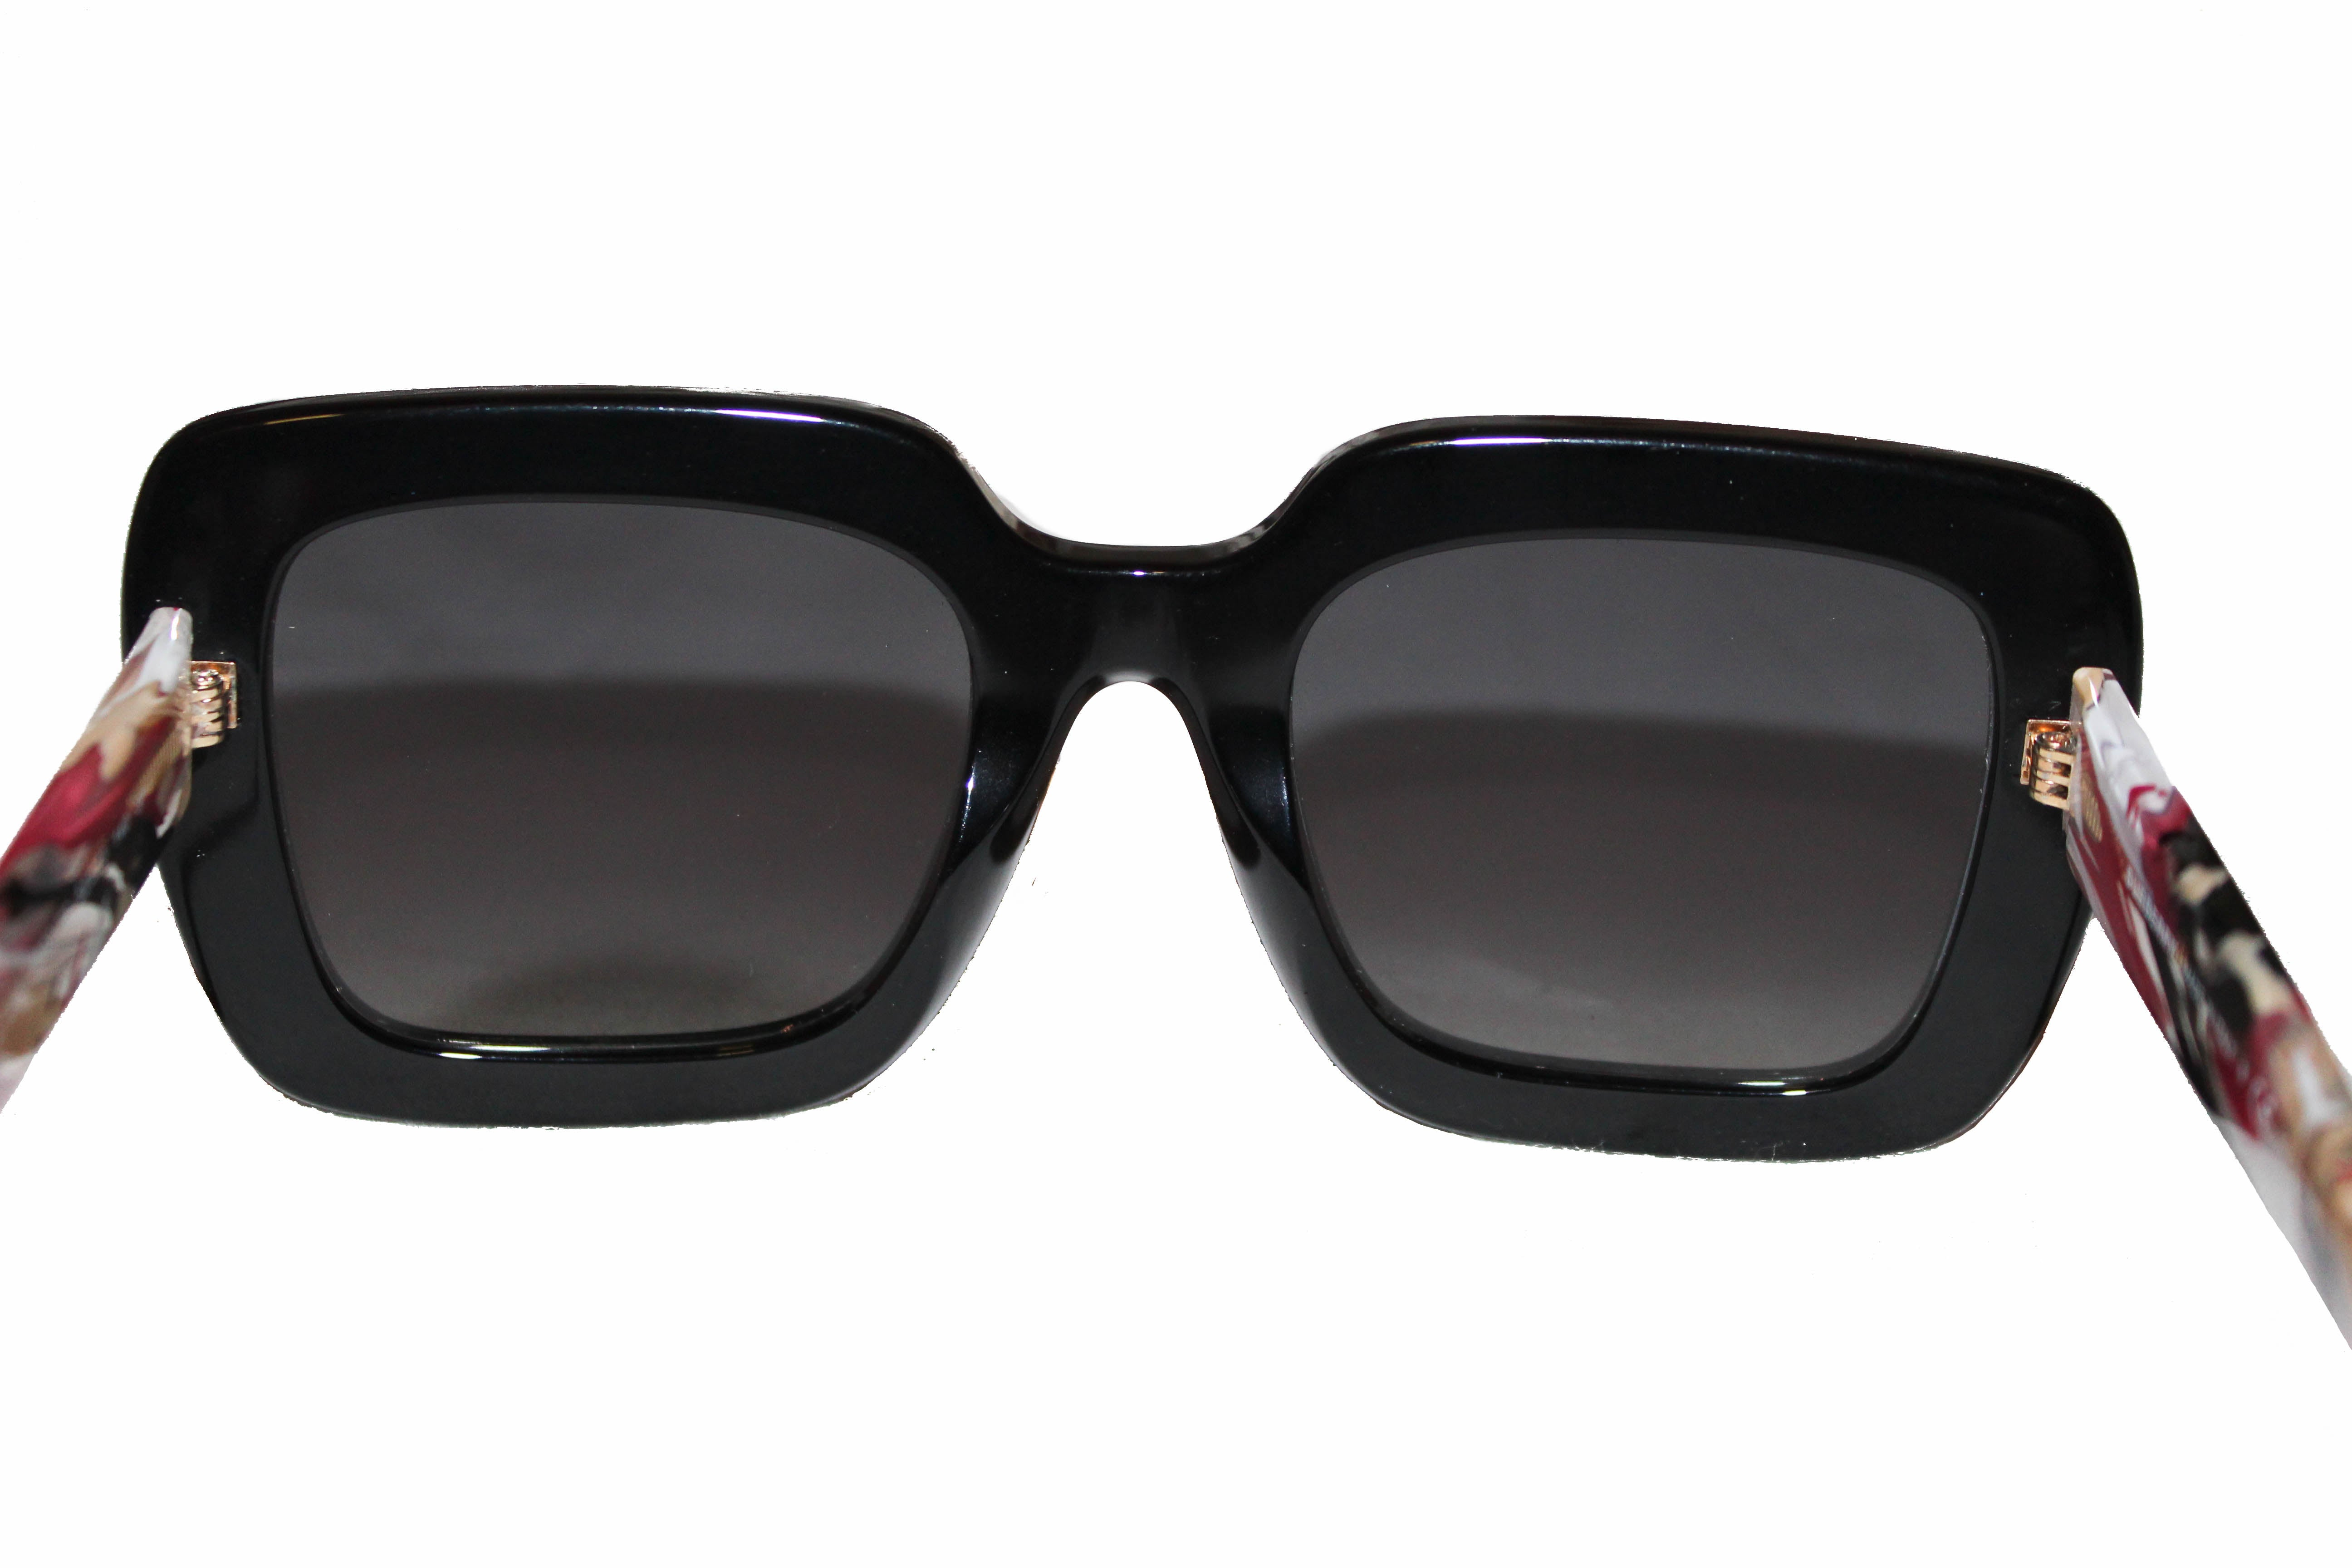 Authentic Burberry Oversized Black Square Frame Sunglasses B 4284